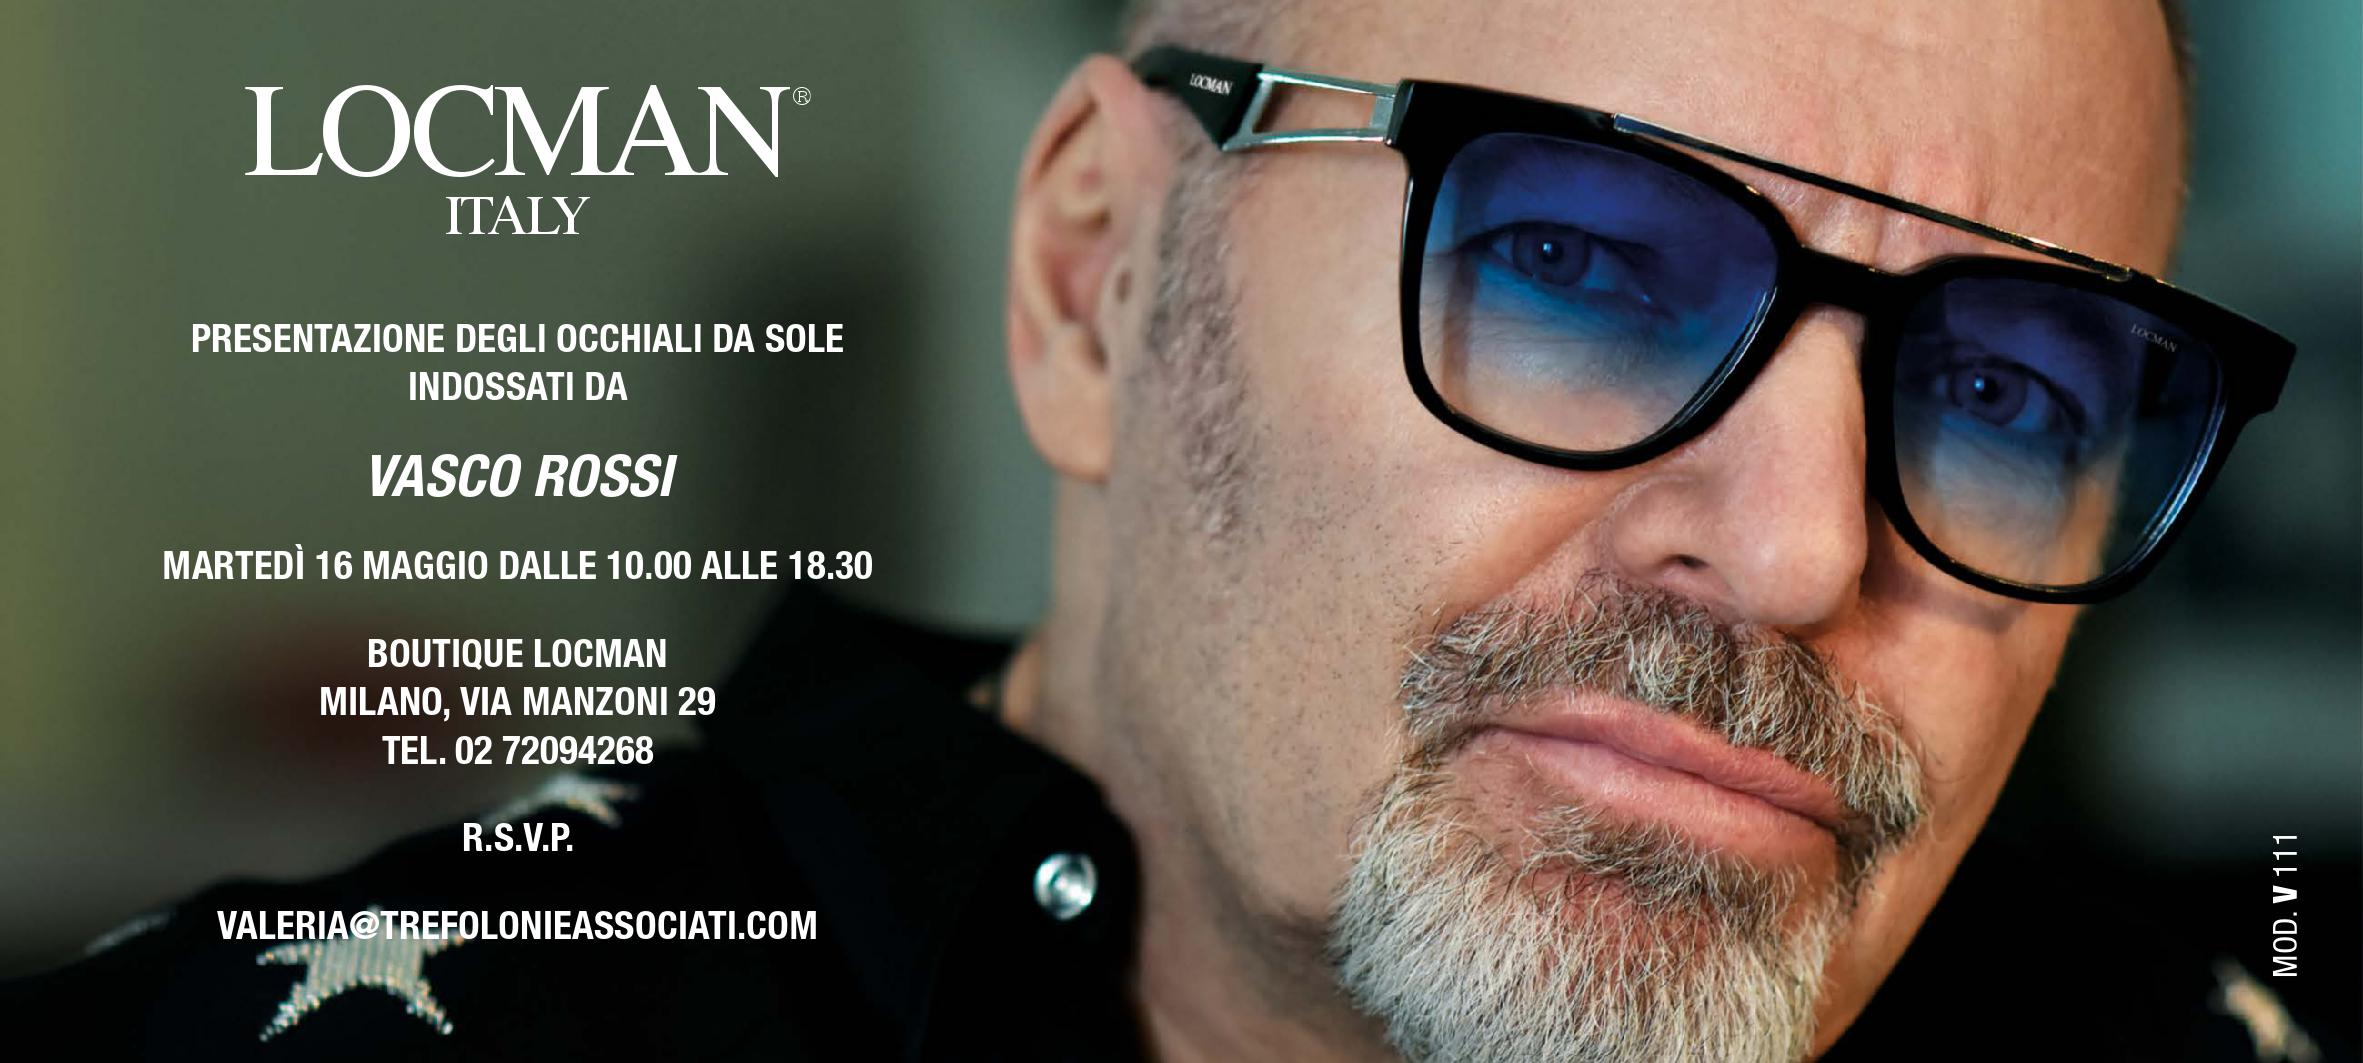 Press Day LOCMAN ITALY – 16 Maggio – 10.00-18.30